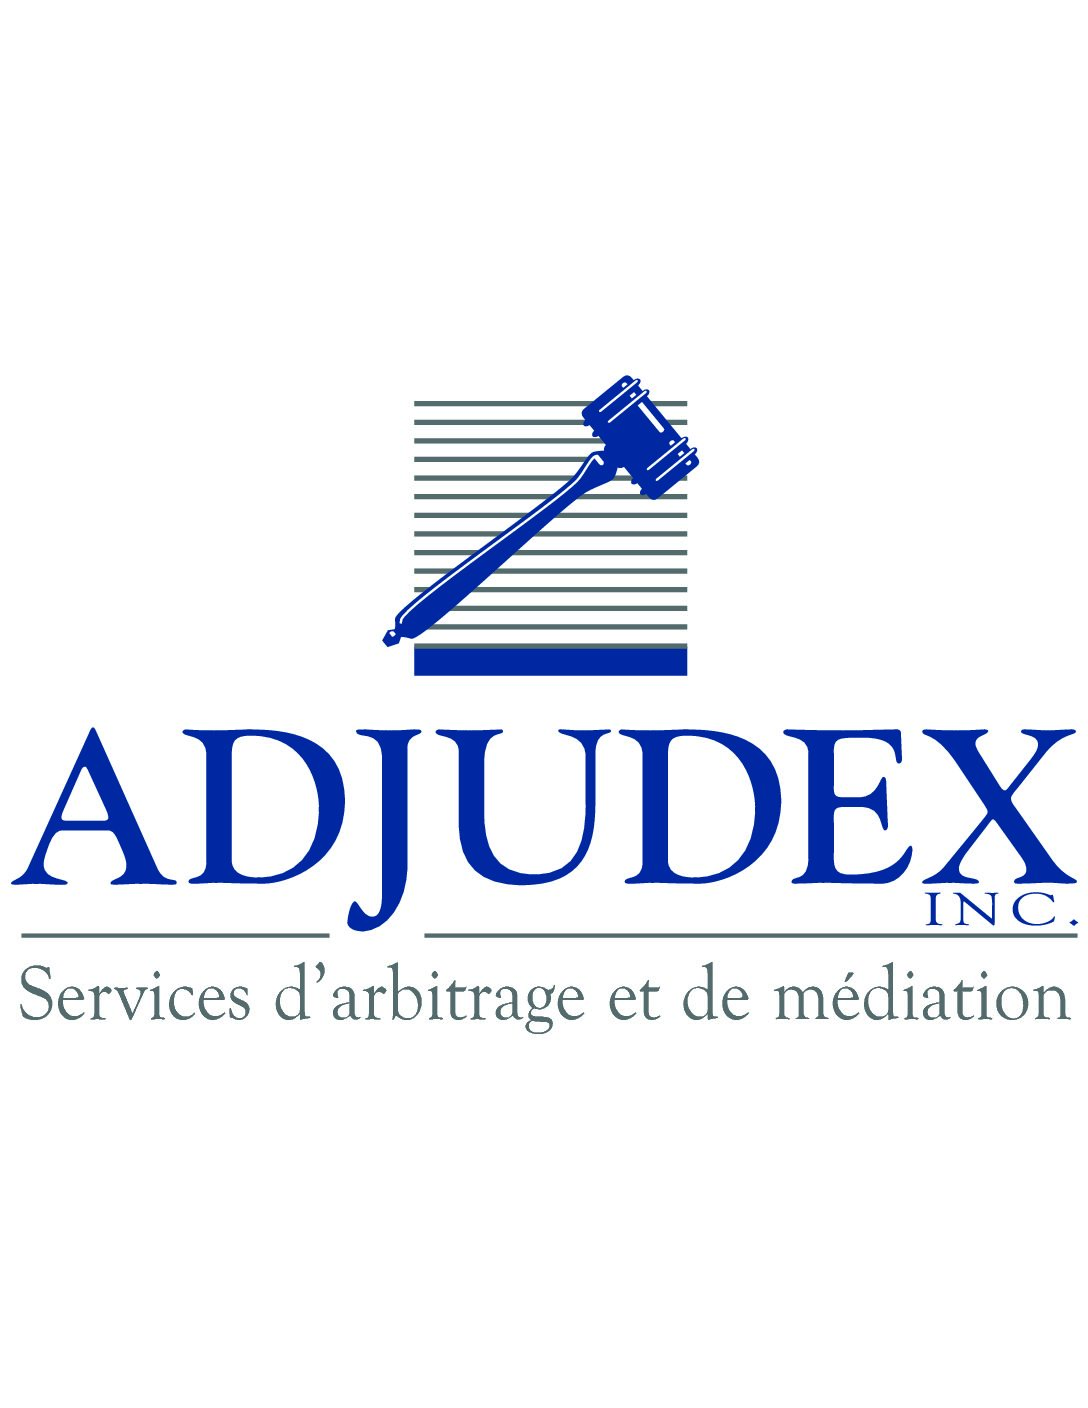 Adjudex inc. Services d'arbitrage et de médiation